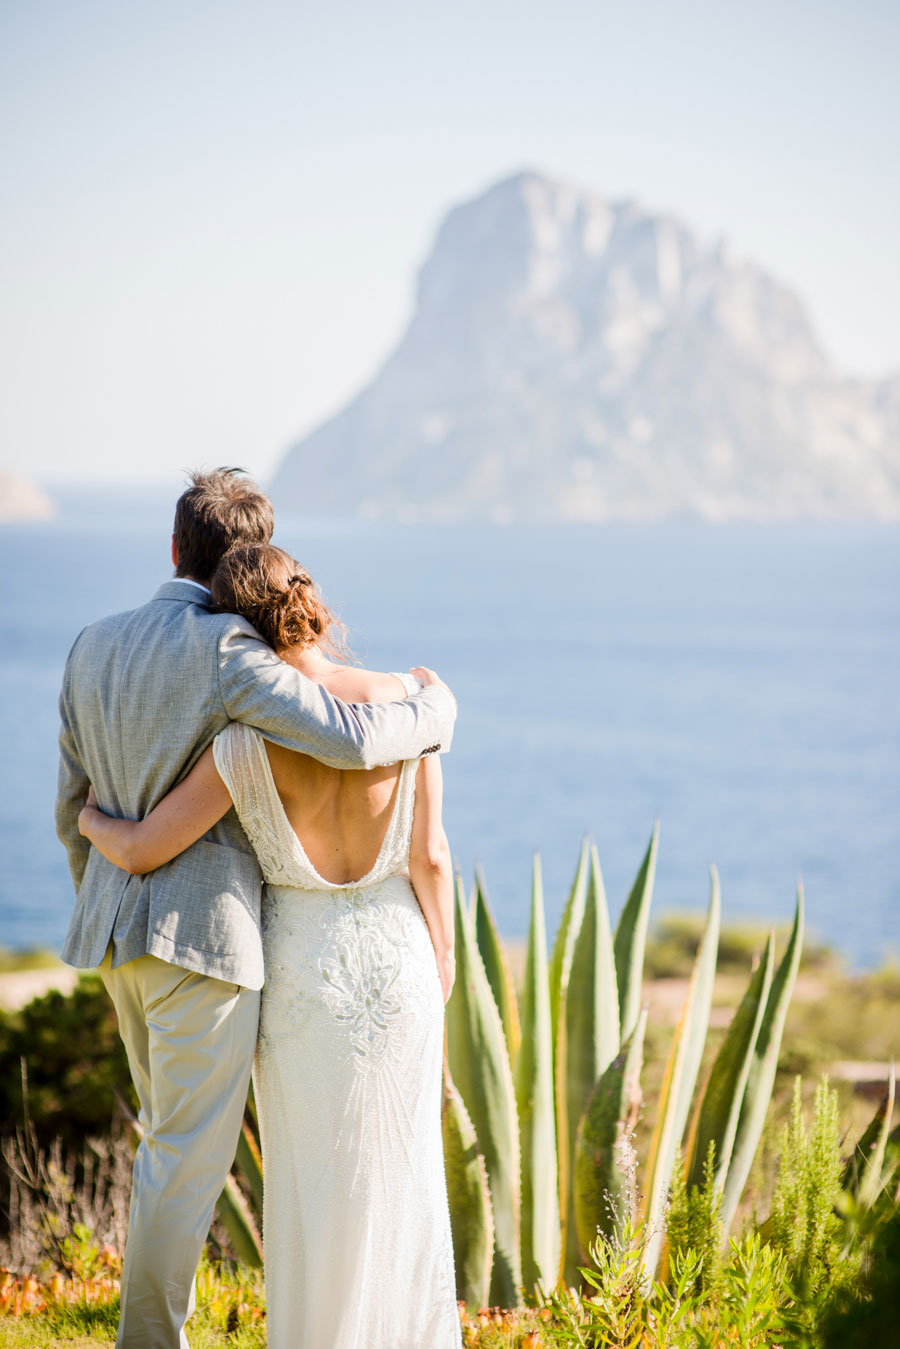 nicola-and-jimmy-es-vedra-ibiza-gypsy-westwood-photography-76